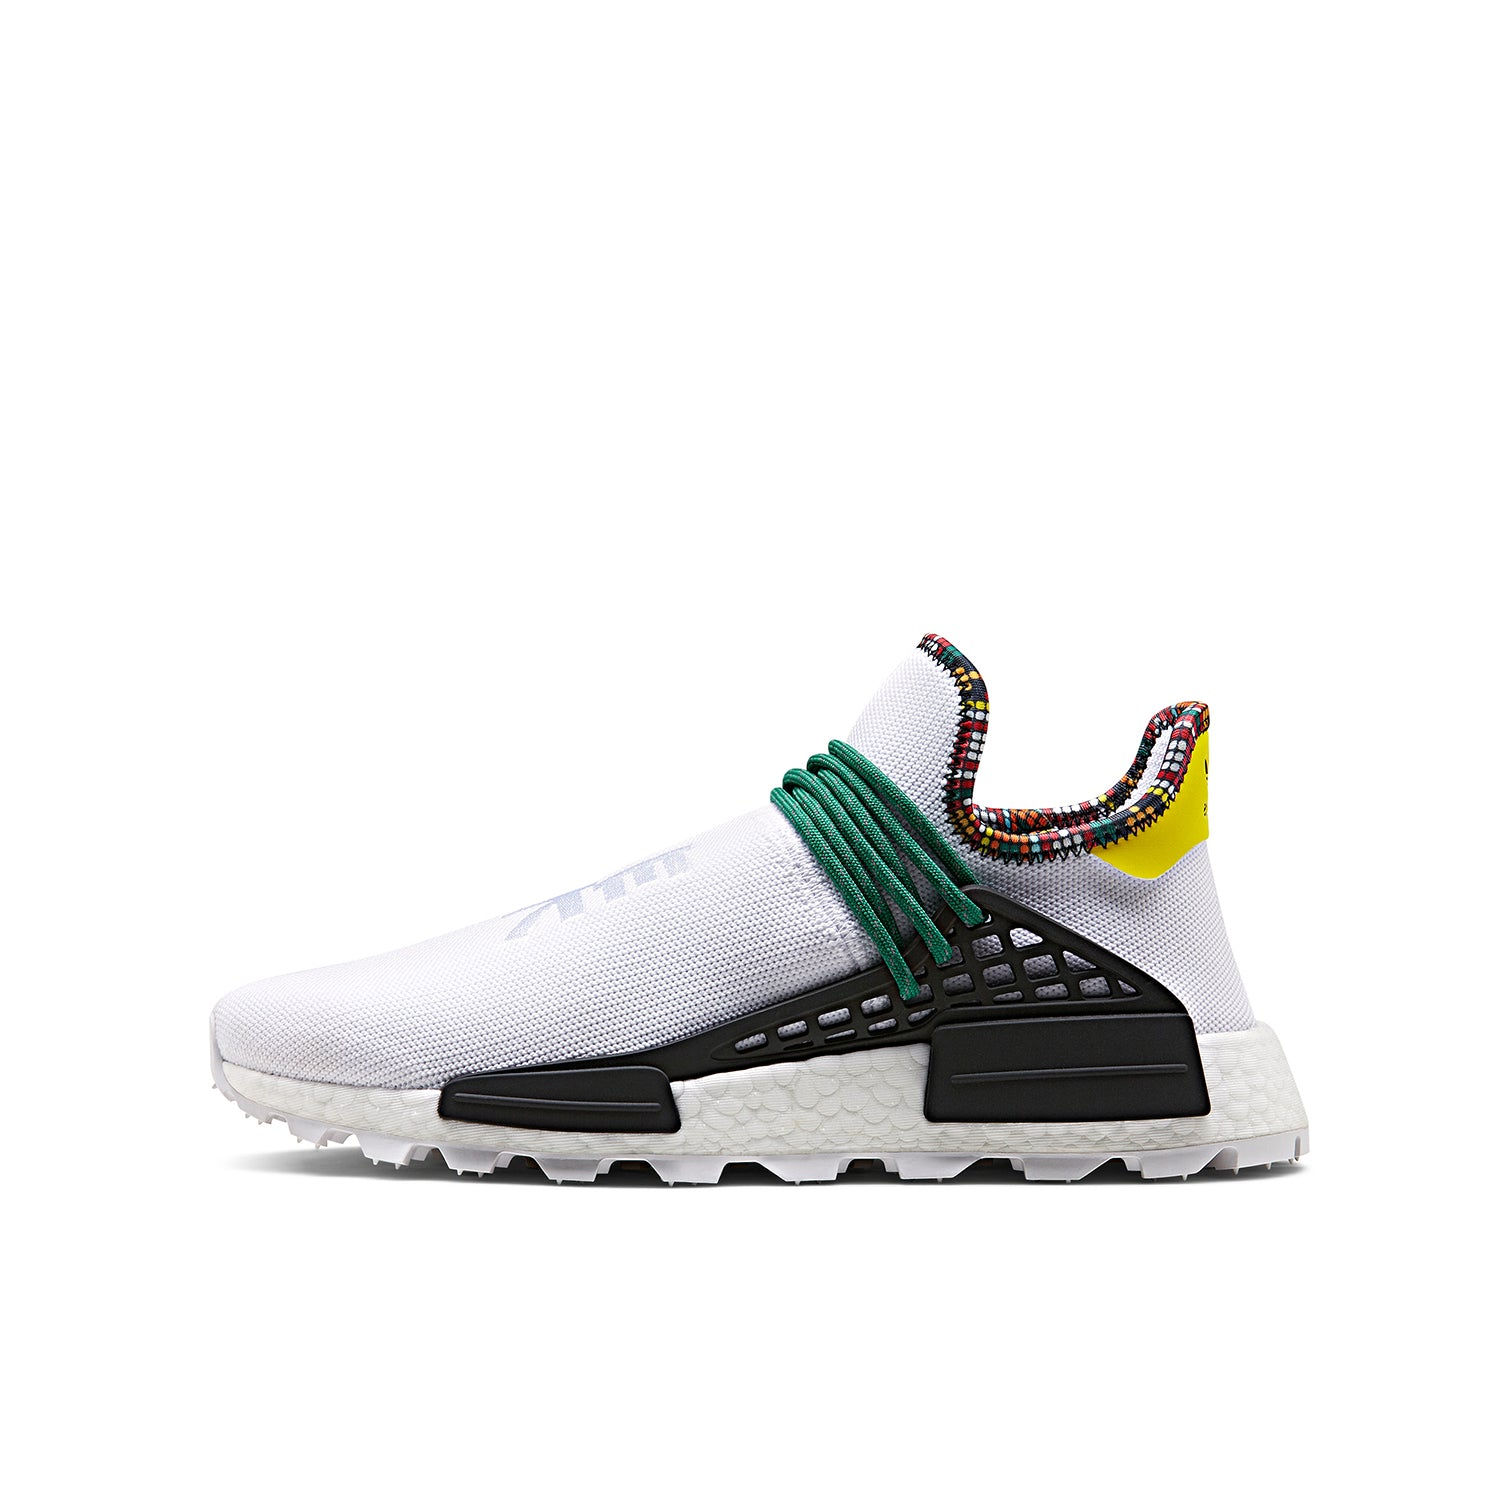 8633d0218a719 adidas Originals x Pharrell Williams  INSPIRATION  Solar HU NMD White. Tap  to expand